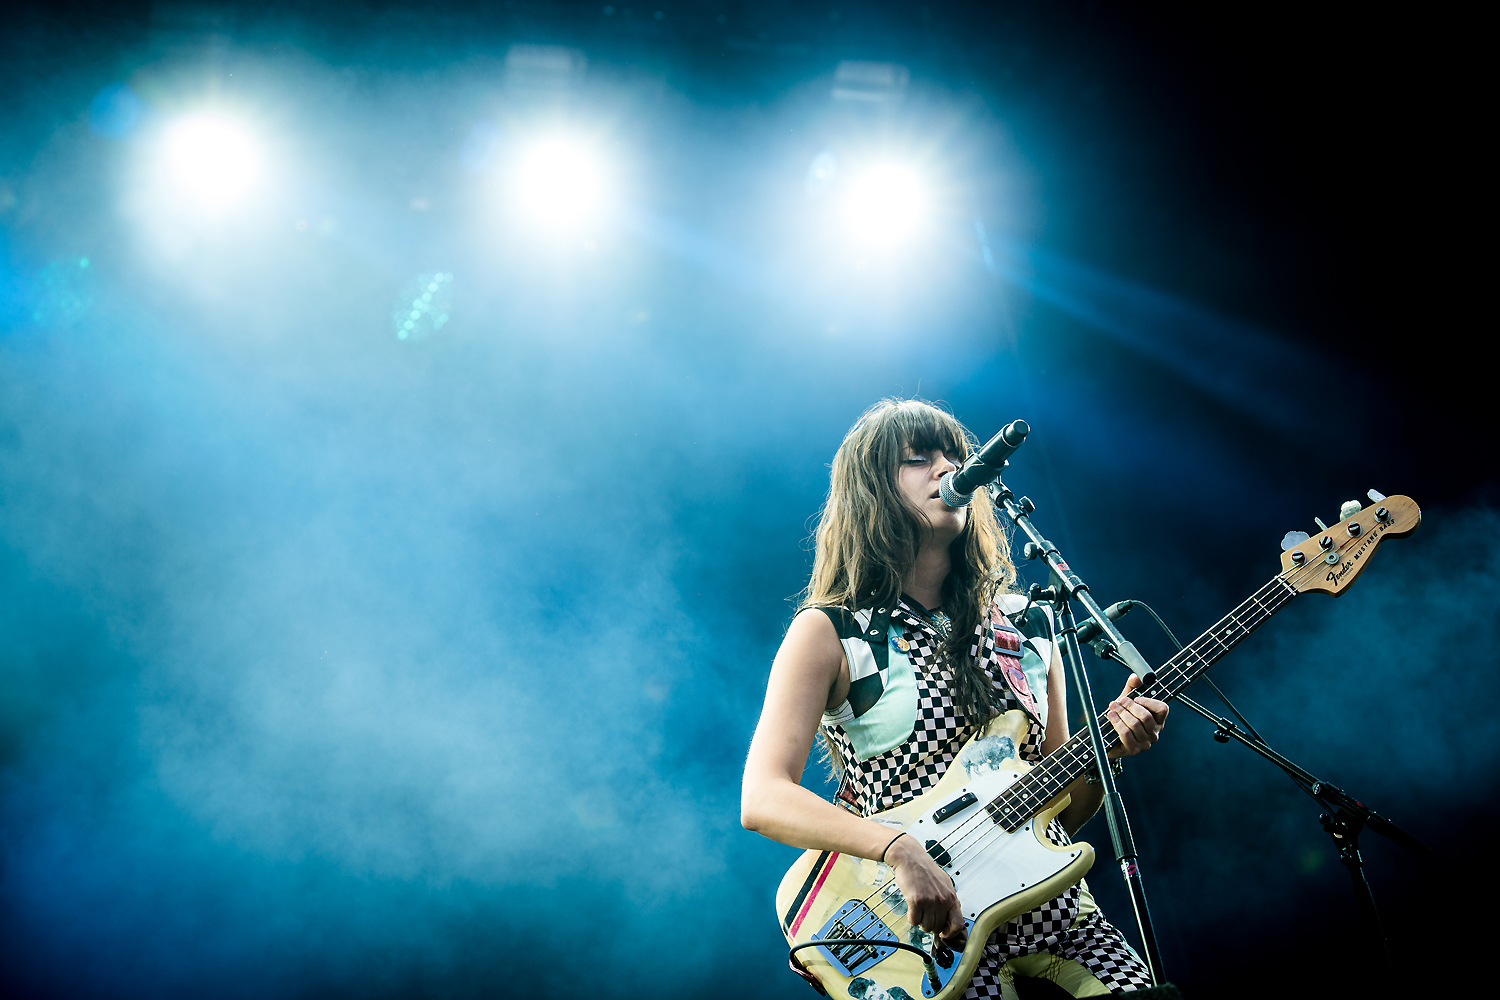 PKP 132 - The Last Internationale